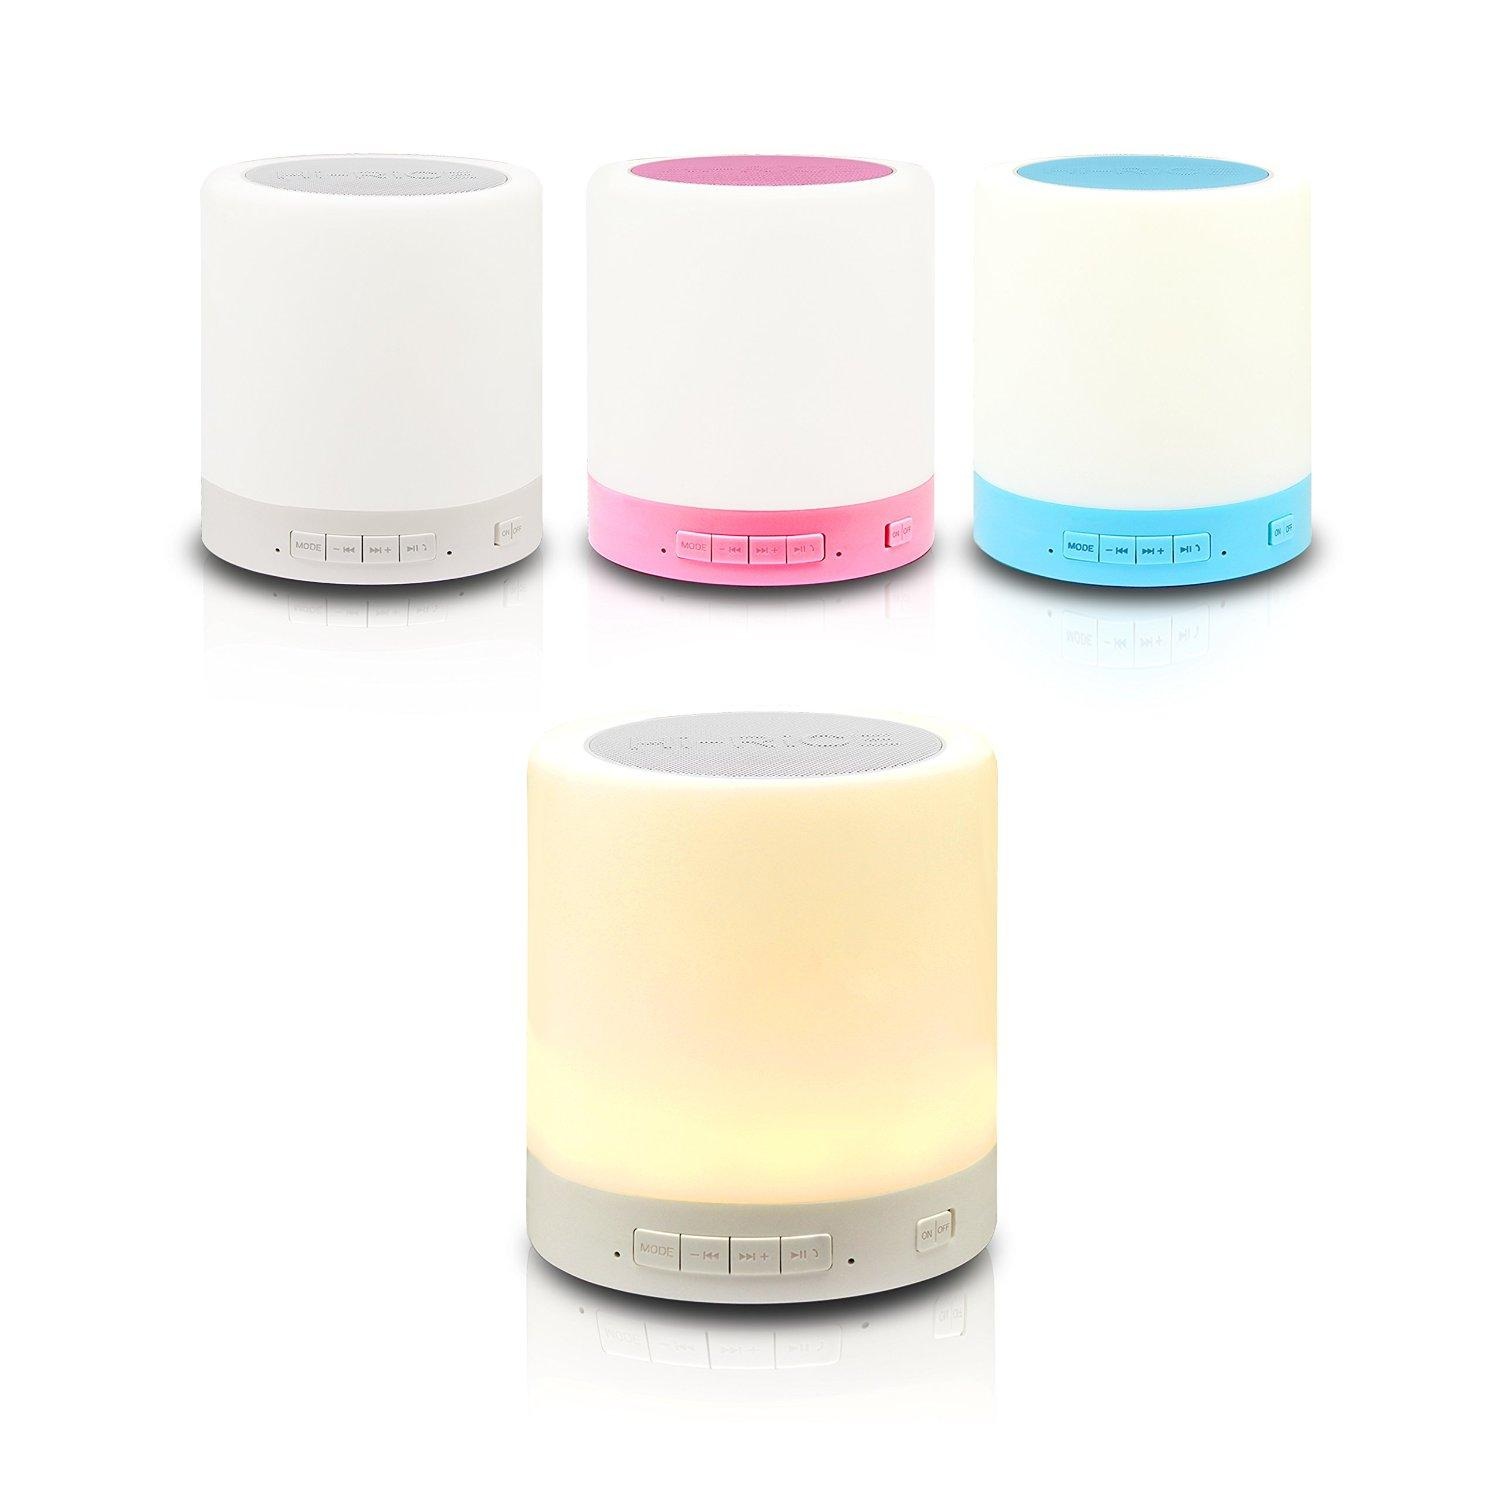 Parihy Pb-3520 Smart Touch Induction Lamp Wireless Bluetooth Music Speaker